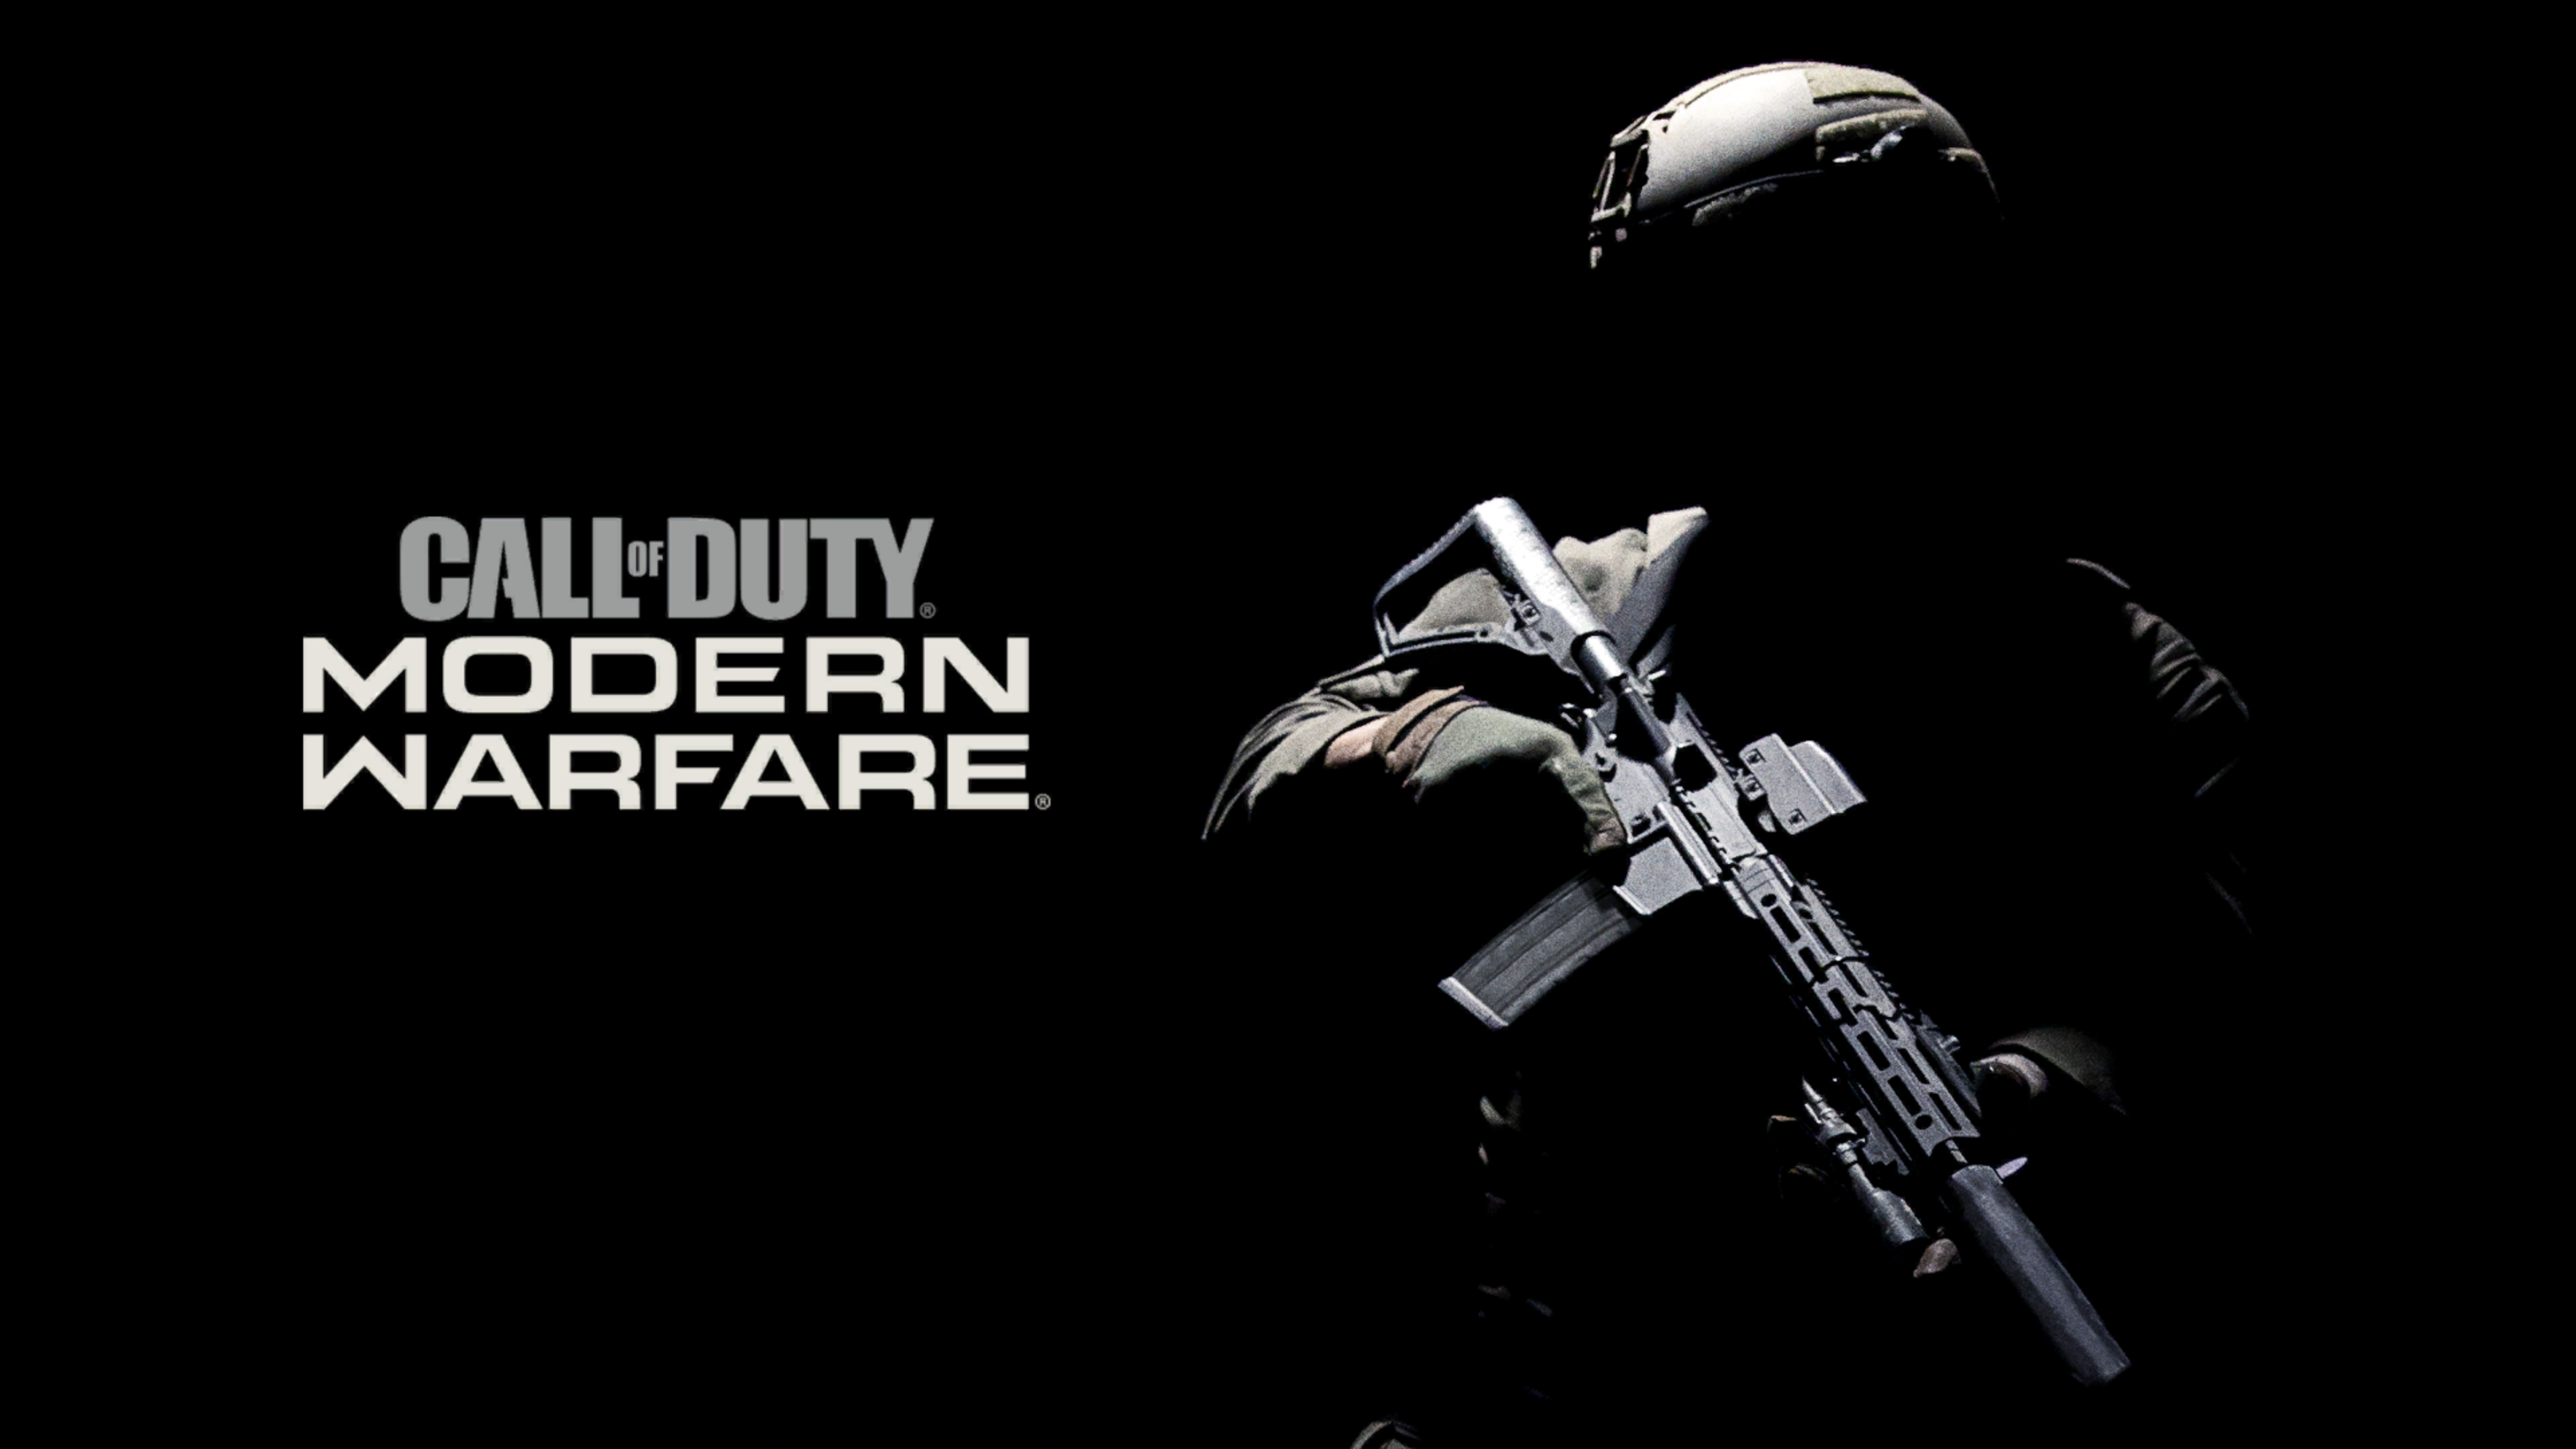 Call Of Duty Modern Warfare 2019 Wallpapers Top Free Call Of